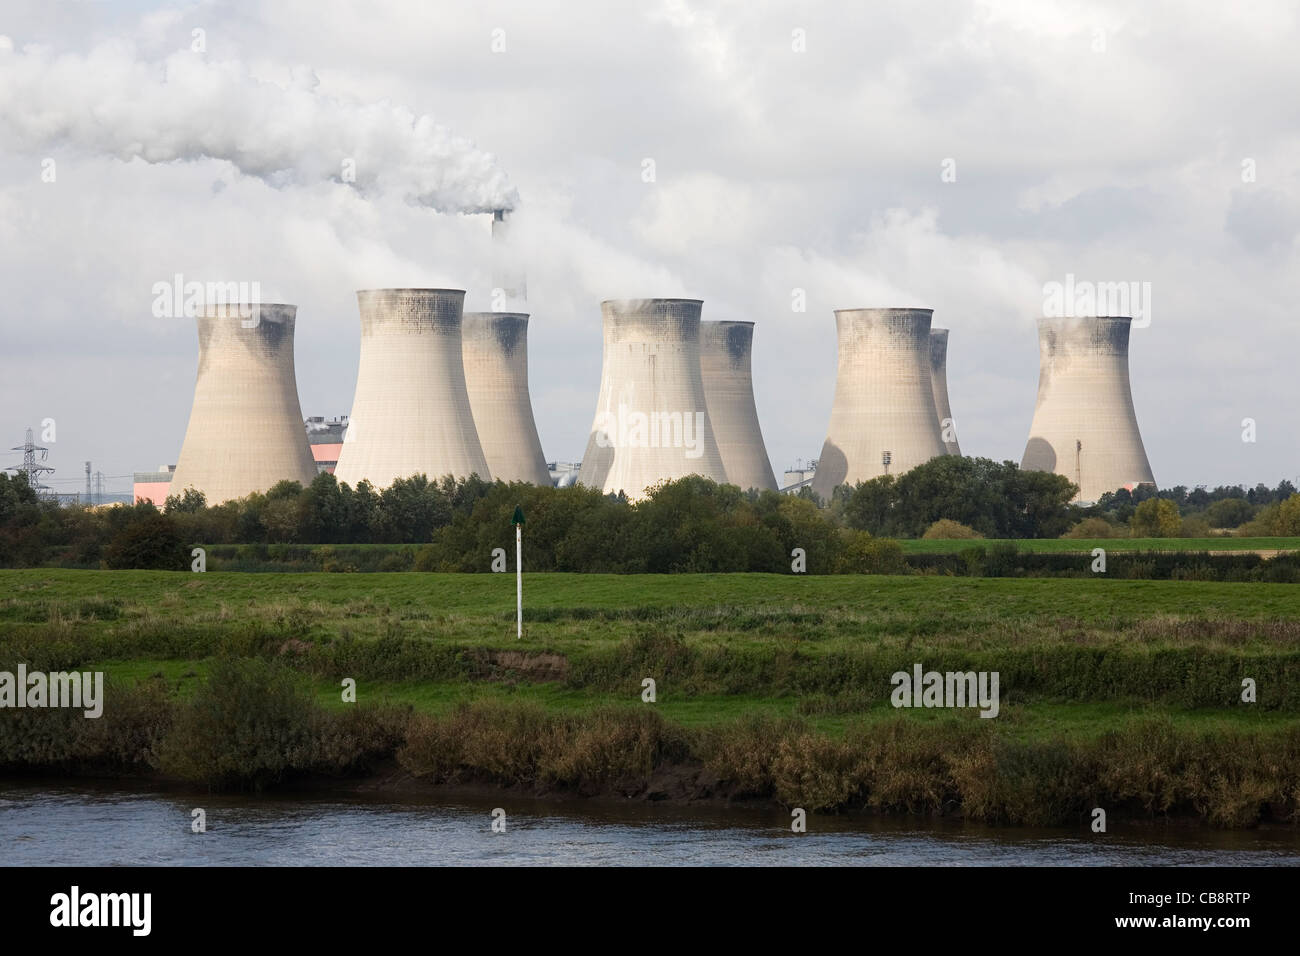 Cottam Power Station Cooling Towers and River Trent - Stock Image